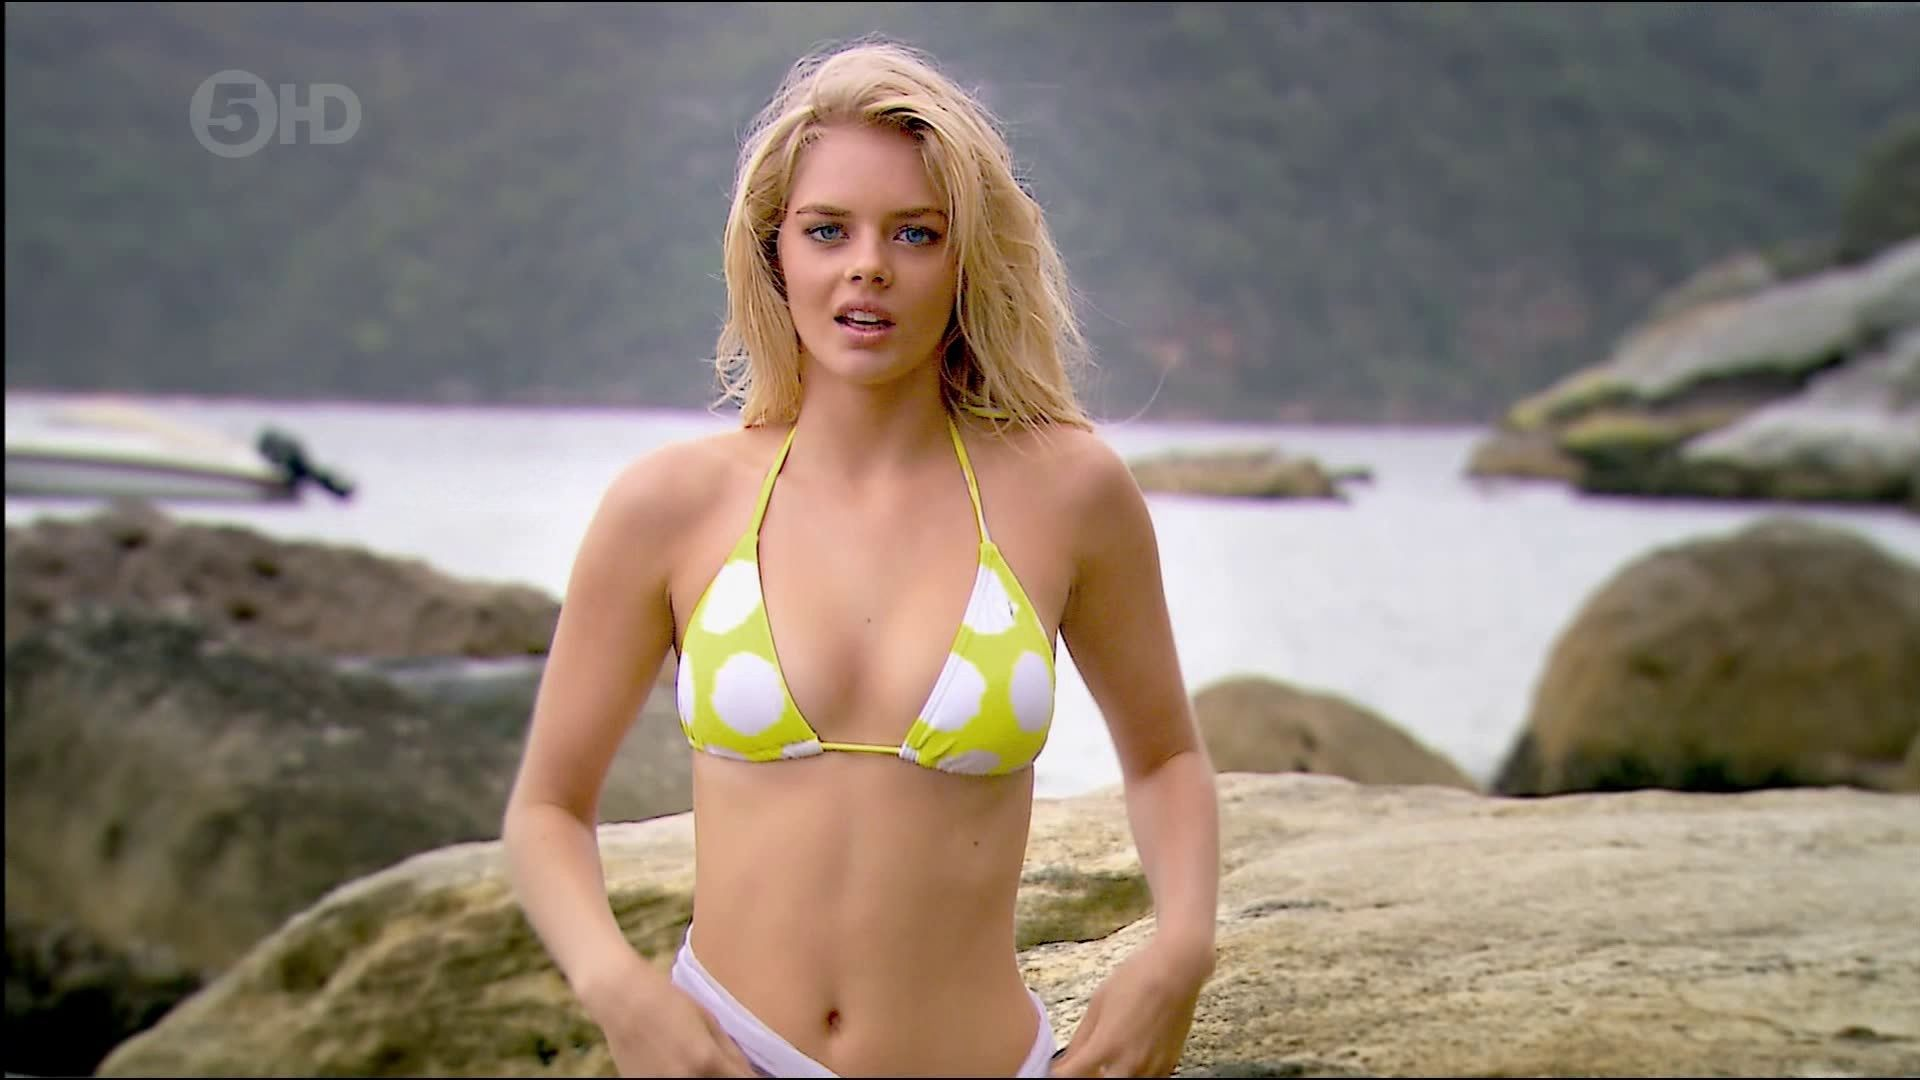 butt Hot Samara Weaving naked photo 2017